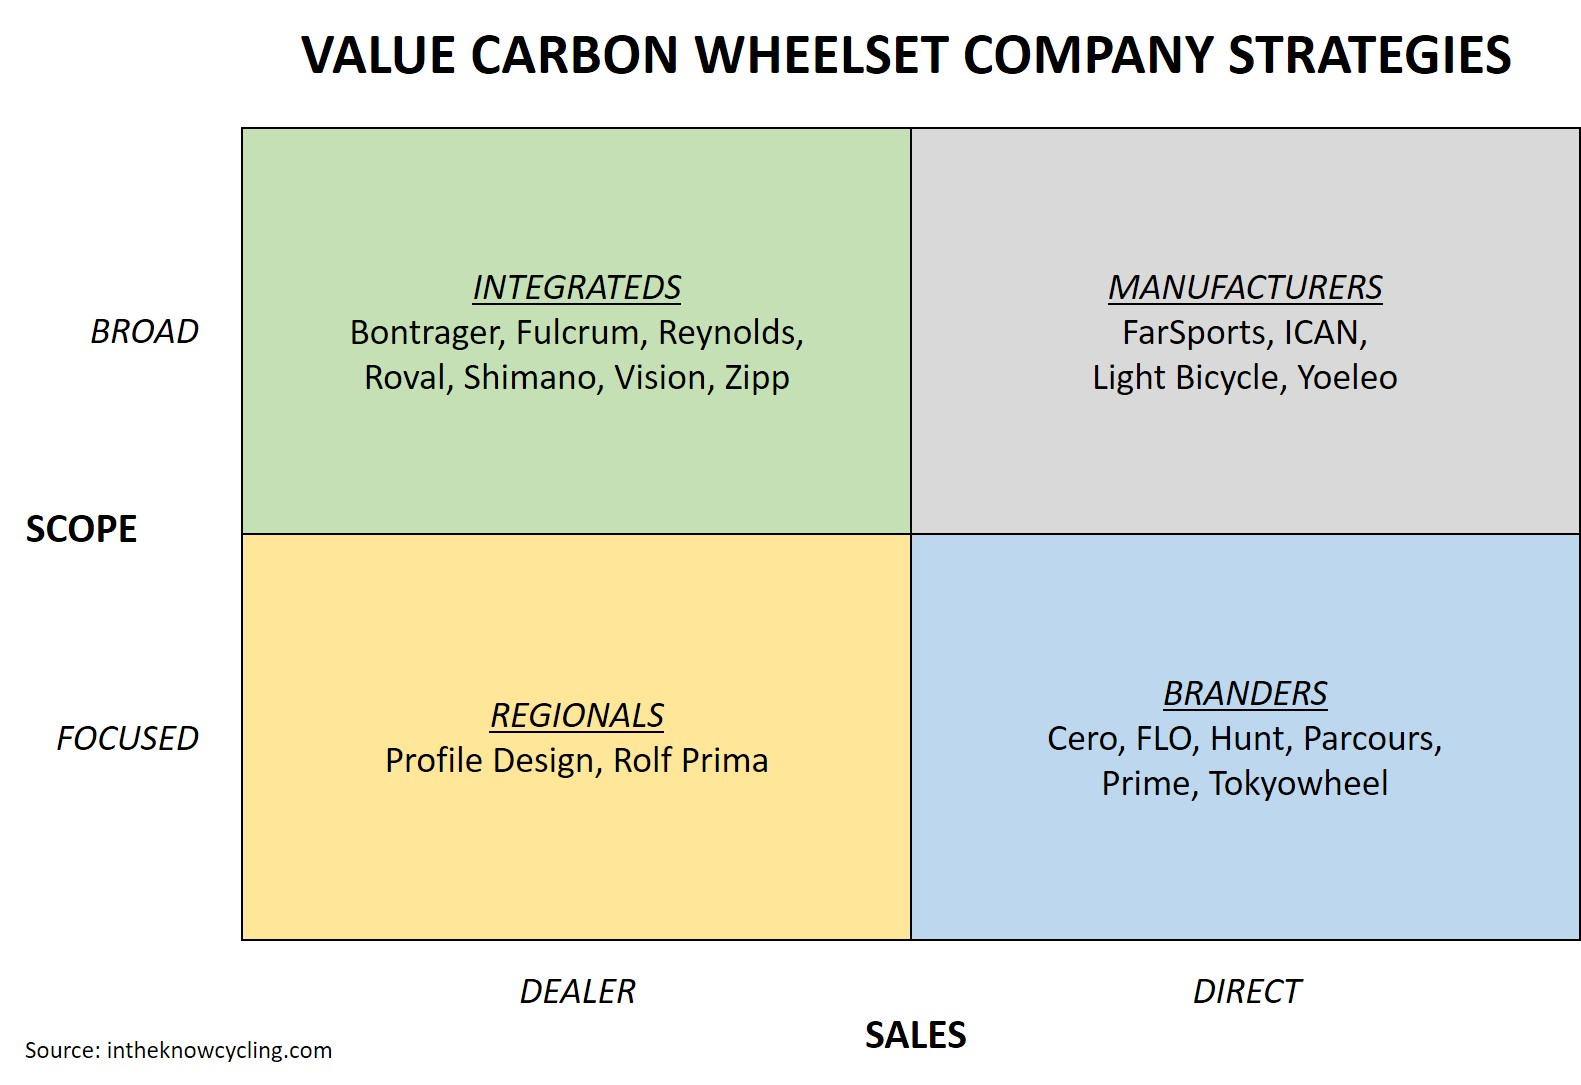 Value Carbon Wheelset Company Strategies